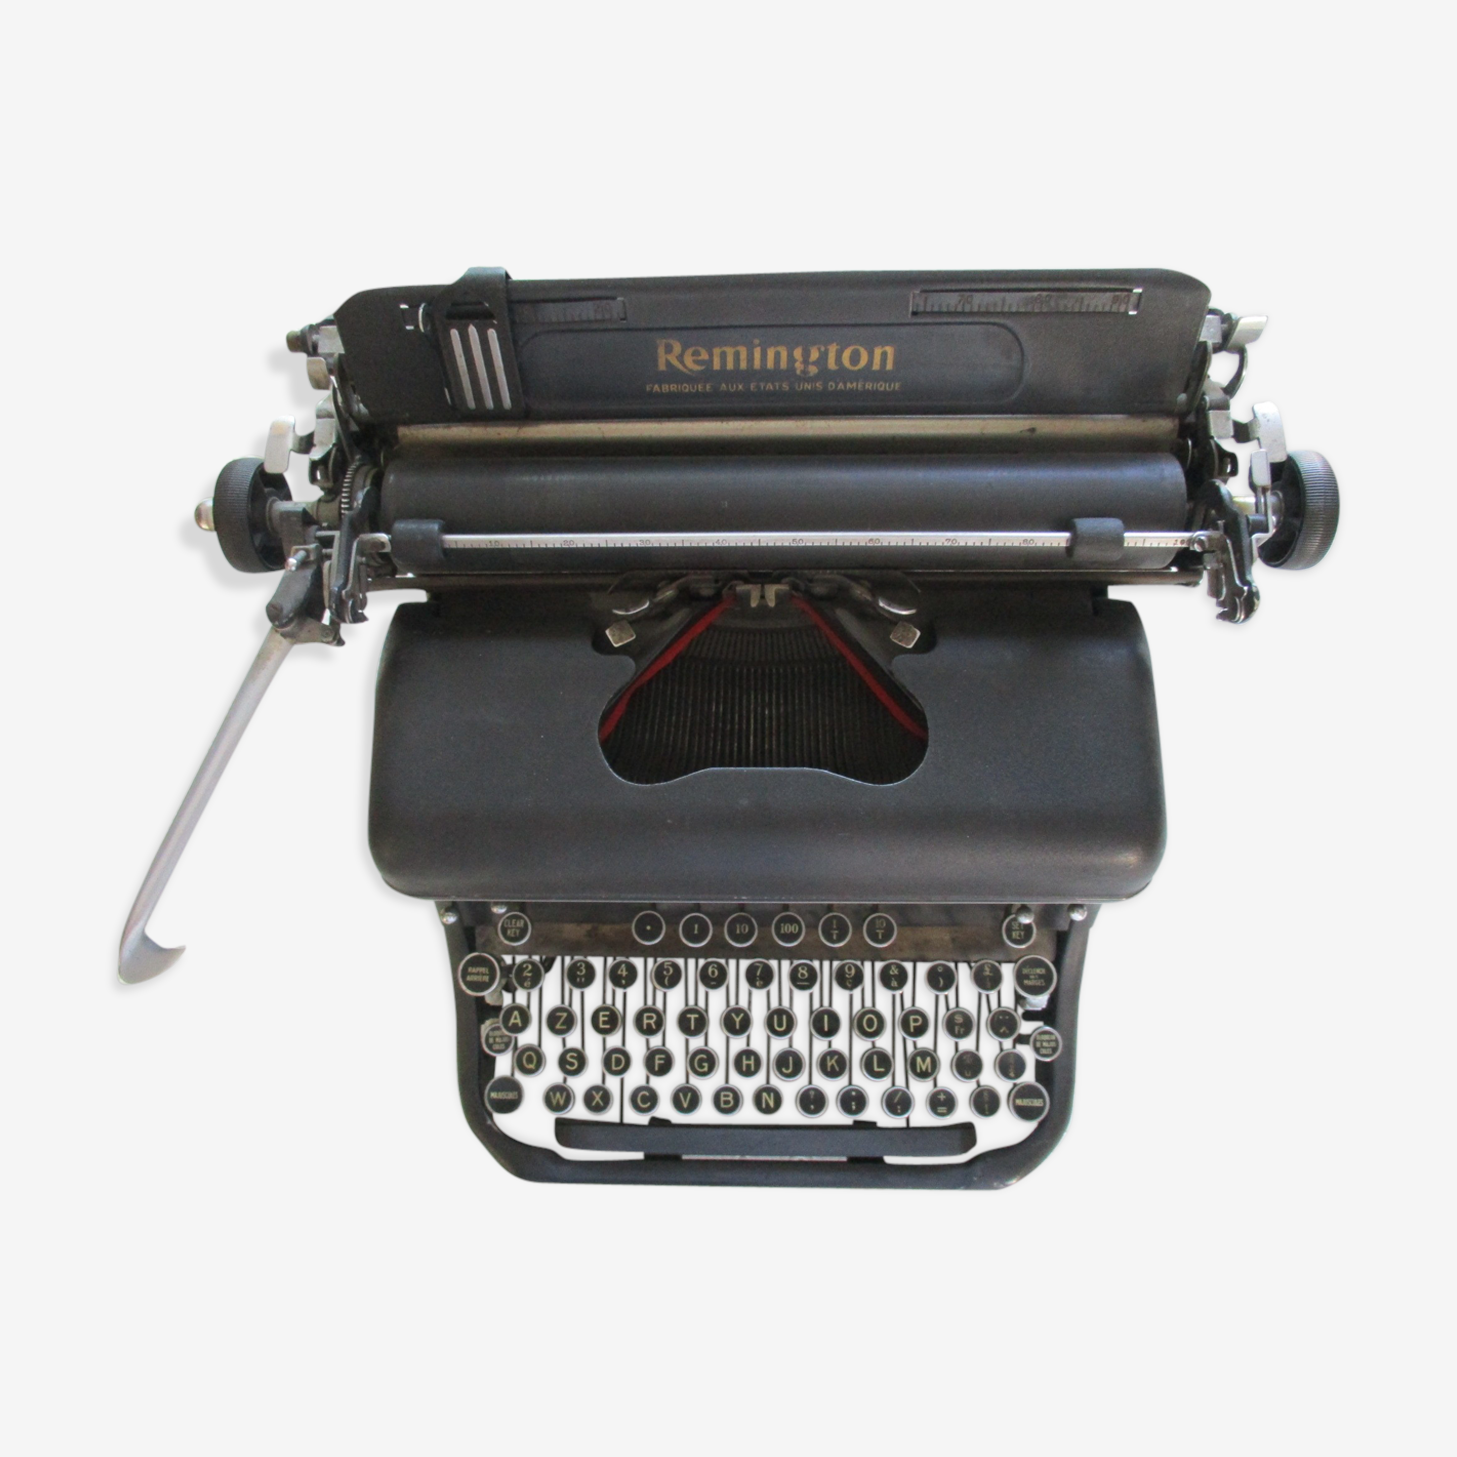 Typewriter Remington model 17 made in the United States of America